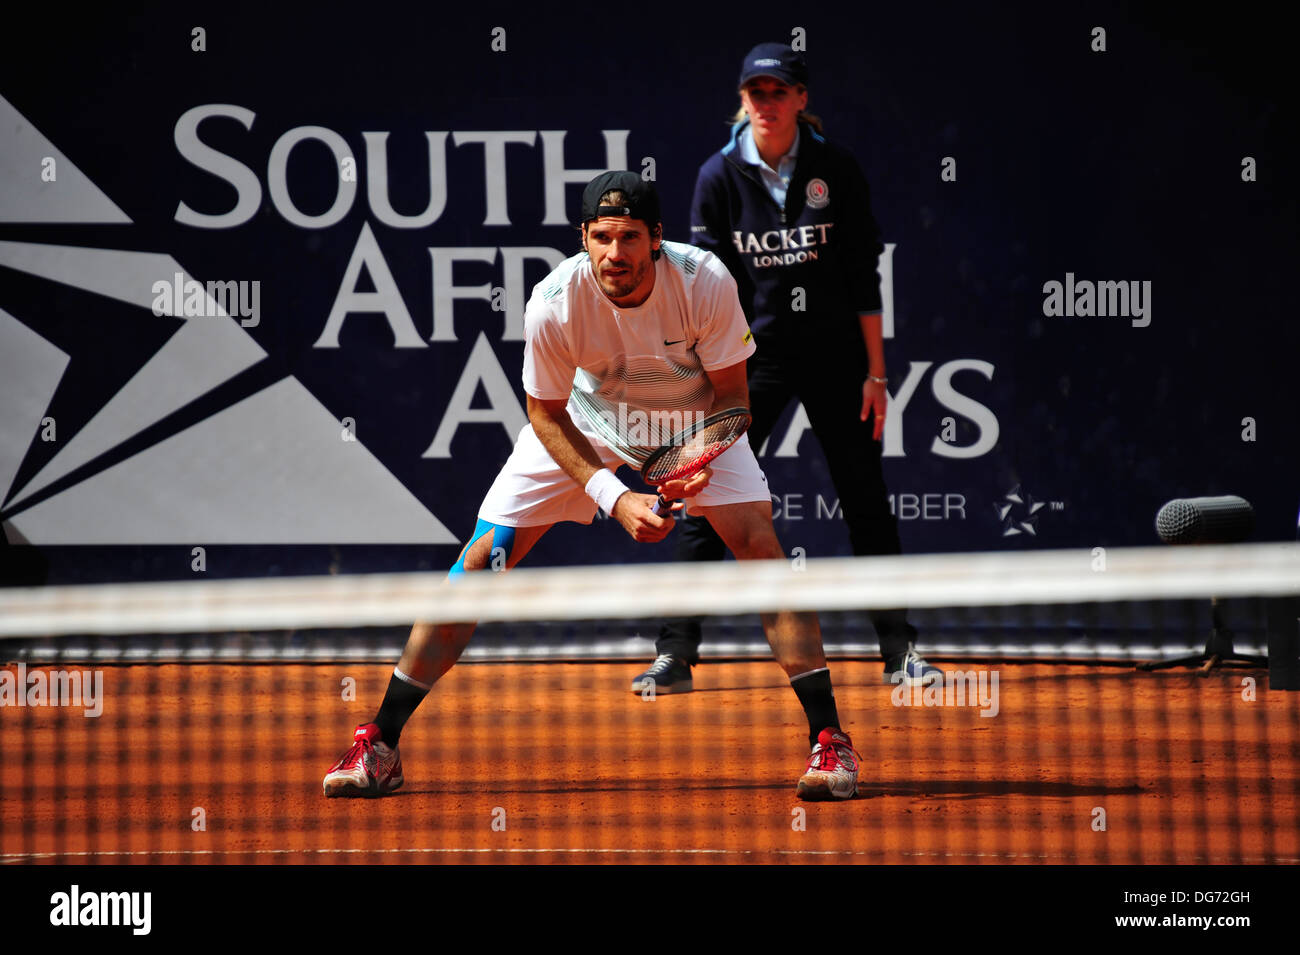 Tommy Haas, bet-at-home ATP Tennis Turnier am Rothenbaum 2012, Hamburg, Germany. Press use only. - Stock Image